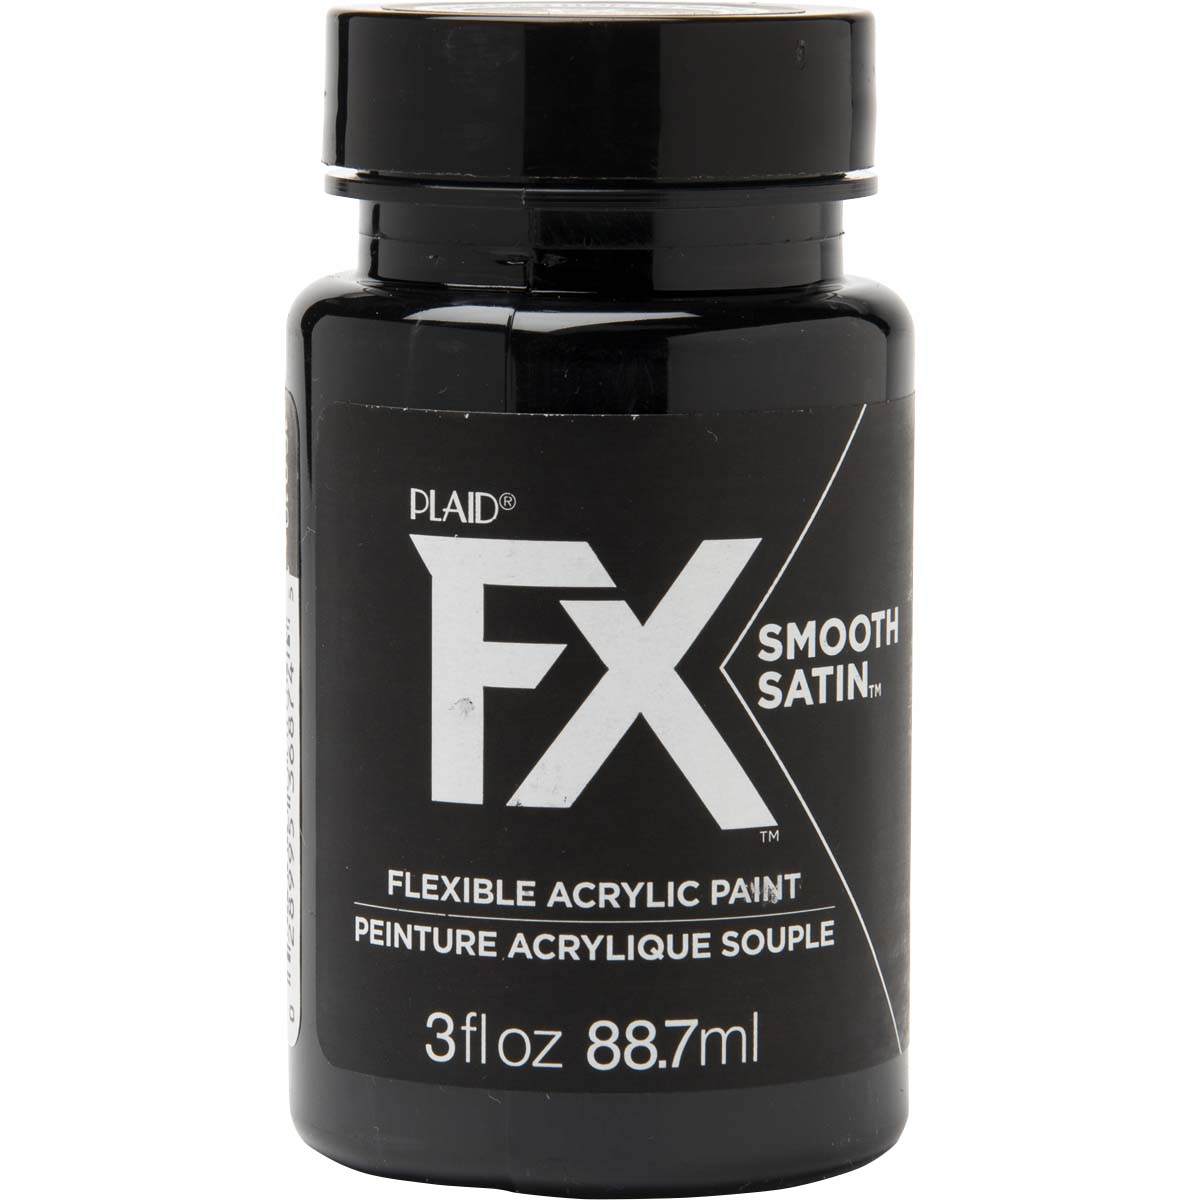 PlaidFX Smooth Satin Flexible Acrylic Paint - Carbon, 3 oz. - 36874